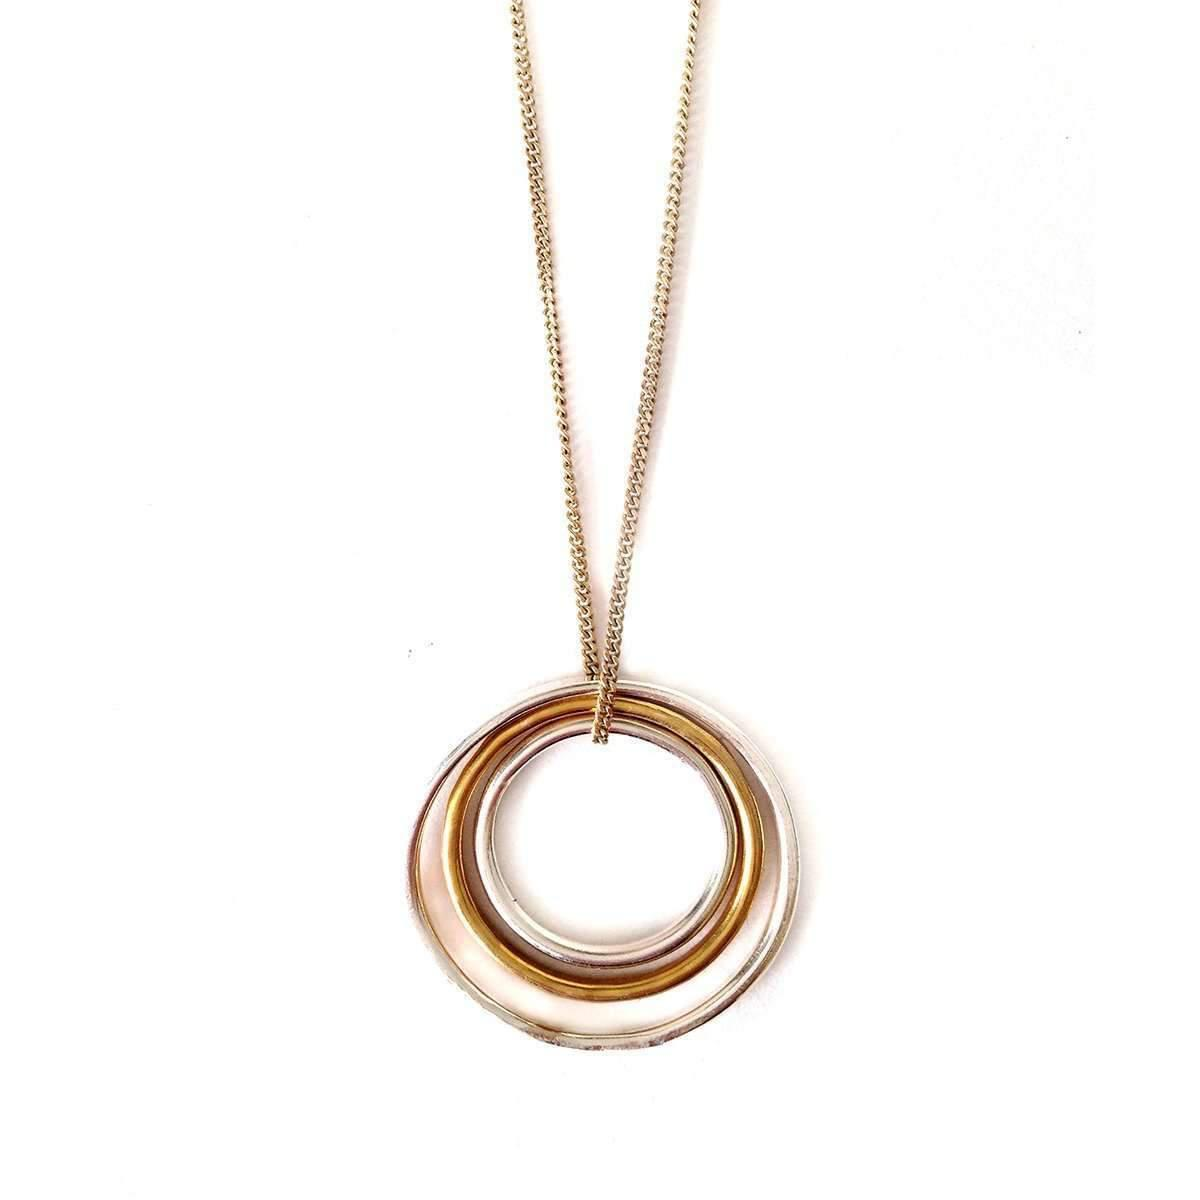 Fran Regan Jewellery Pendant 1 Vermeil Loop, 2 Silver Loops On Silver Chain